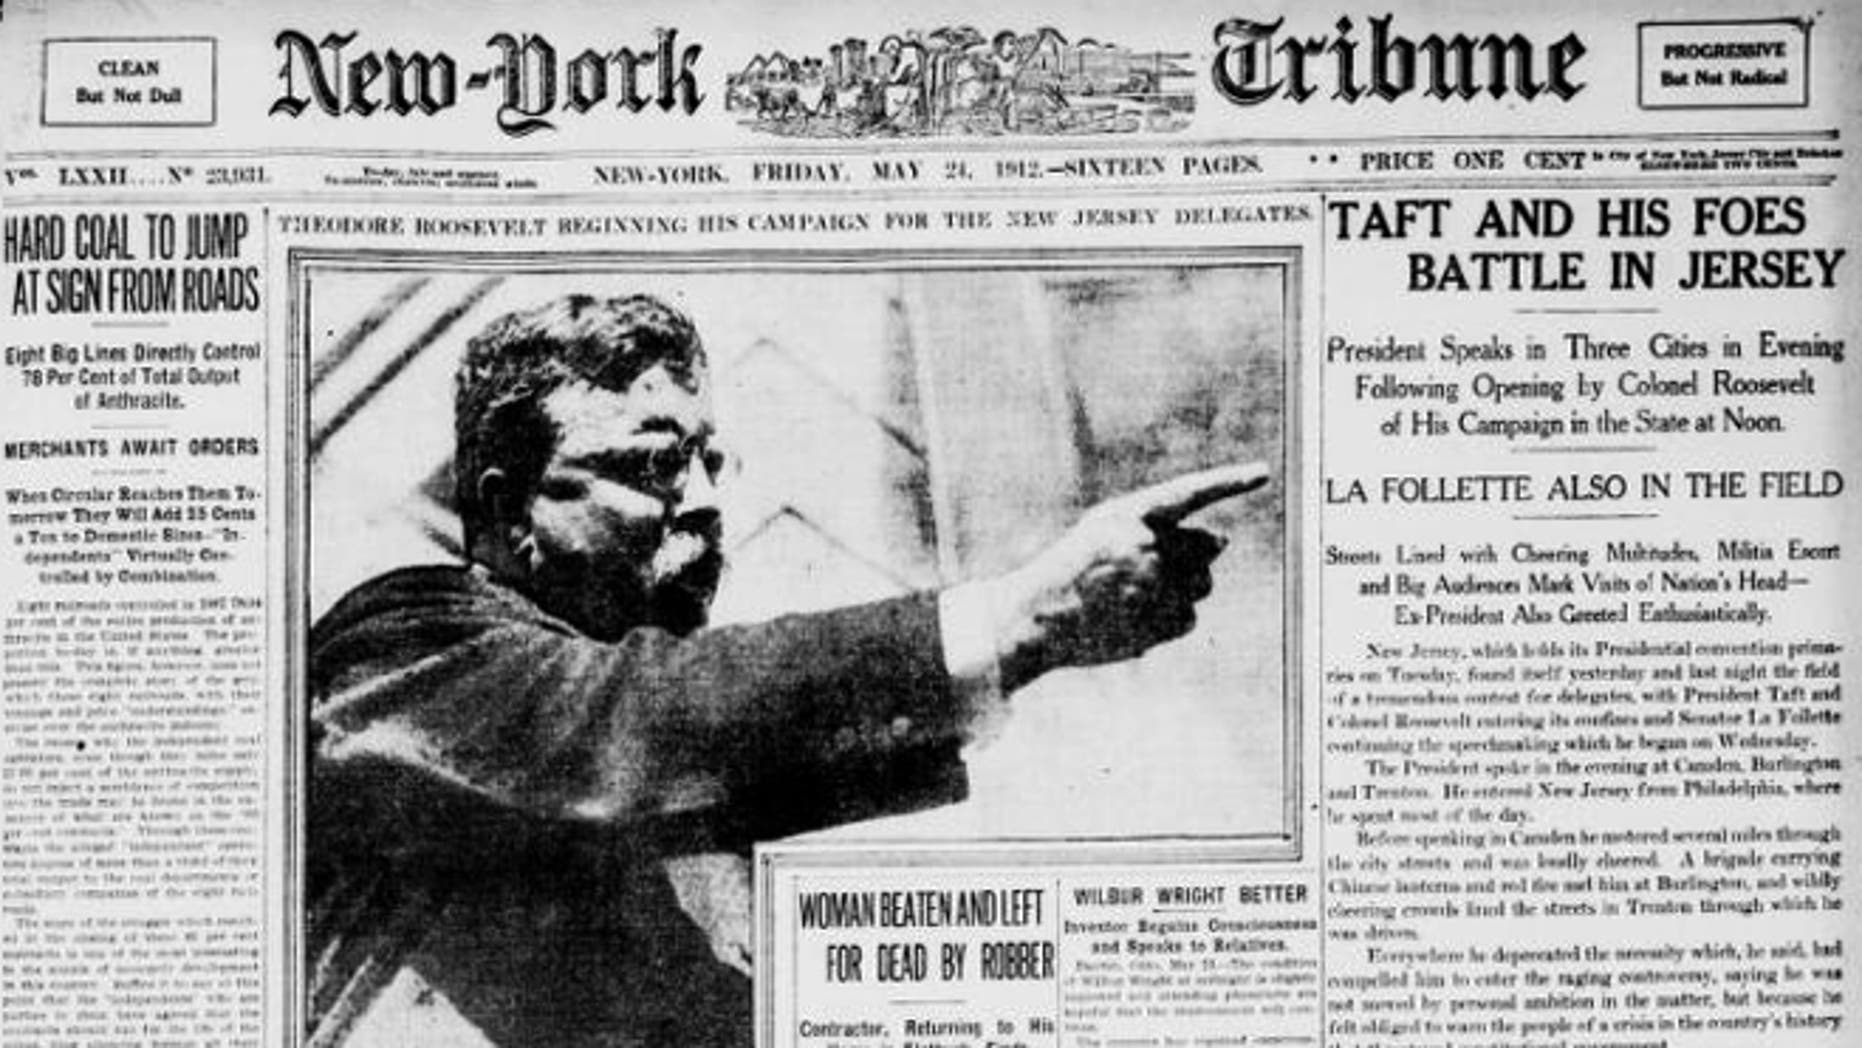 The May 24, 1912 New-York Tribune said Teddy Roosevelt was beginning a campaign for office.